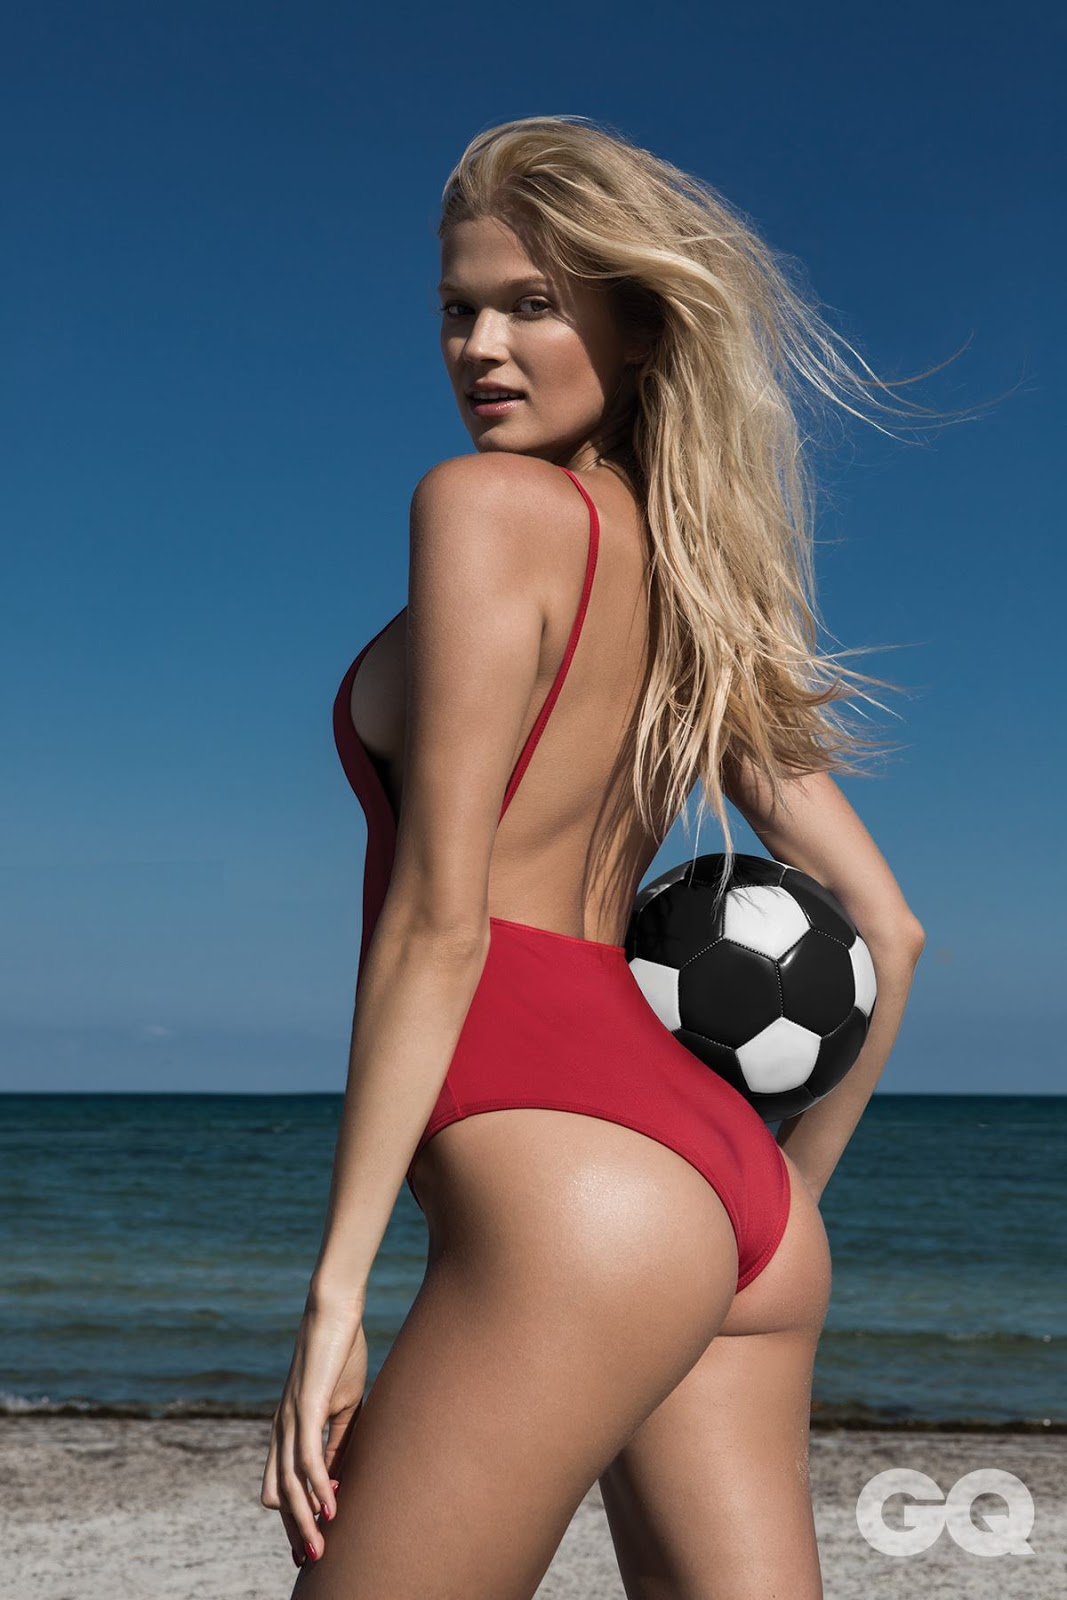 GQ México June 2018 Vita Sidorkina by Greg Lotus